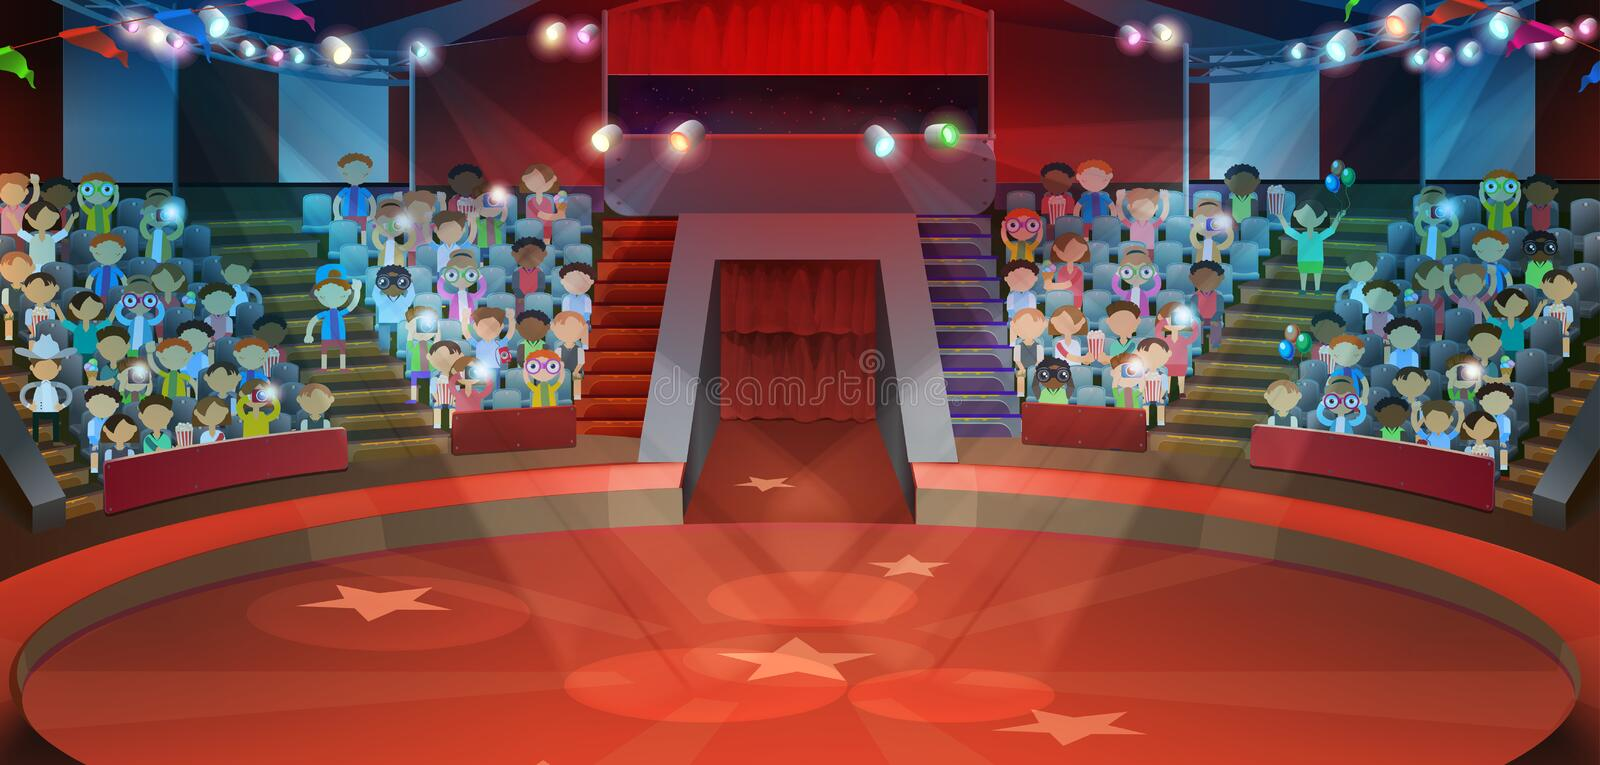 Circus arena background. Circus arena, vector illustration background